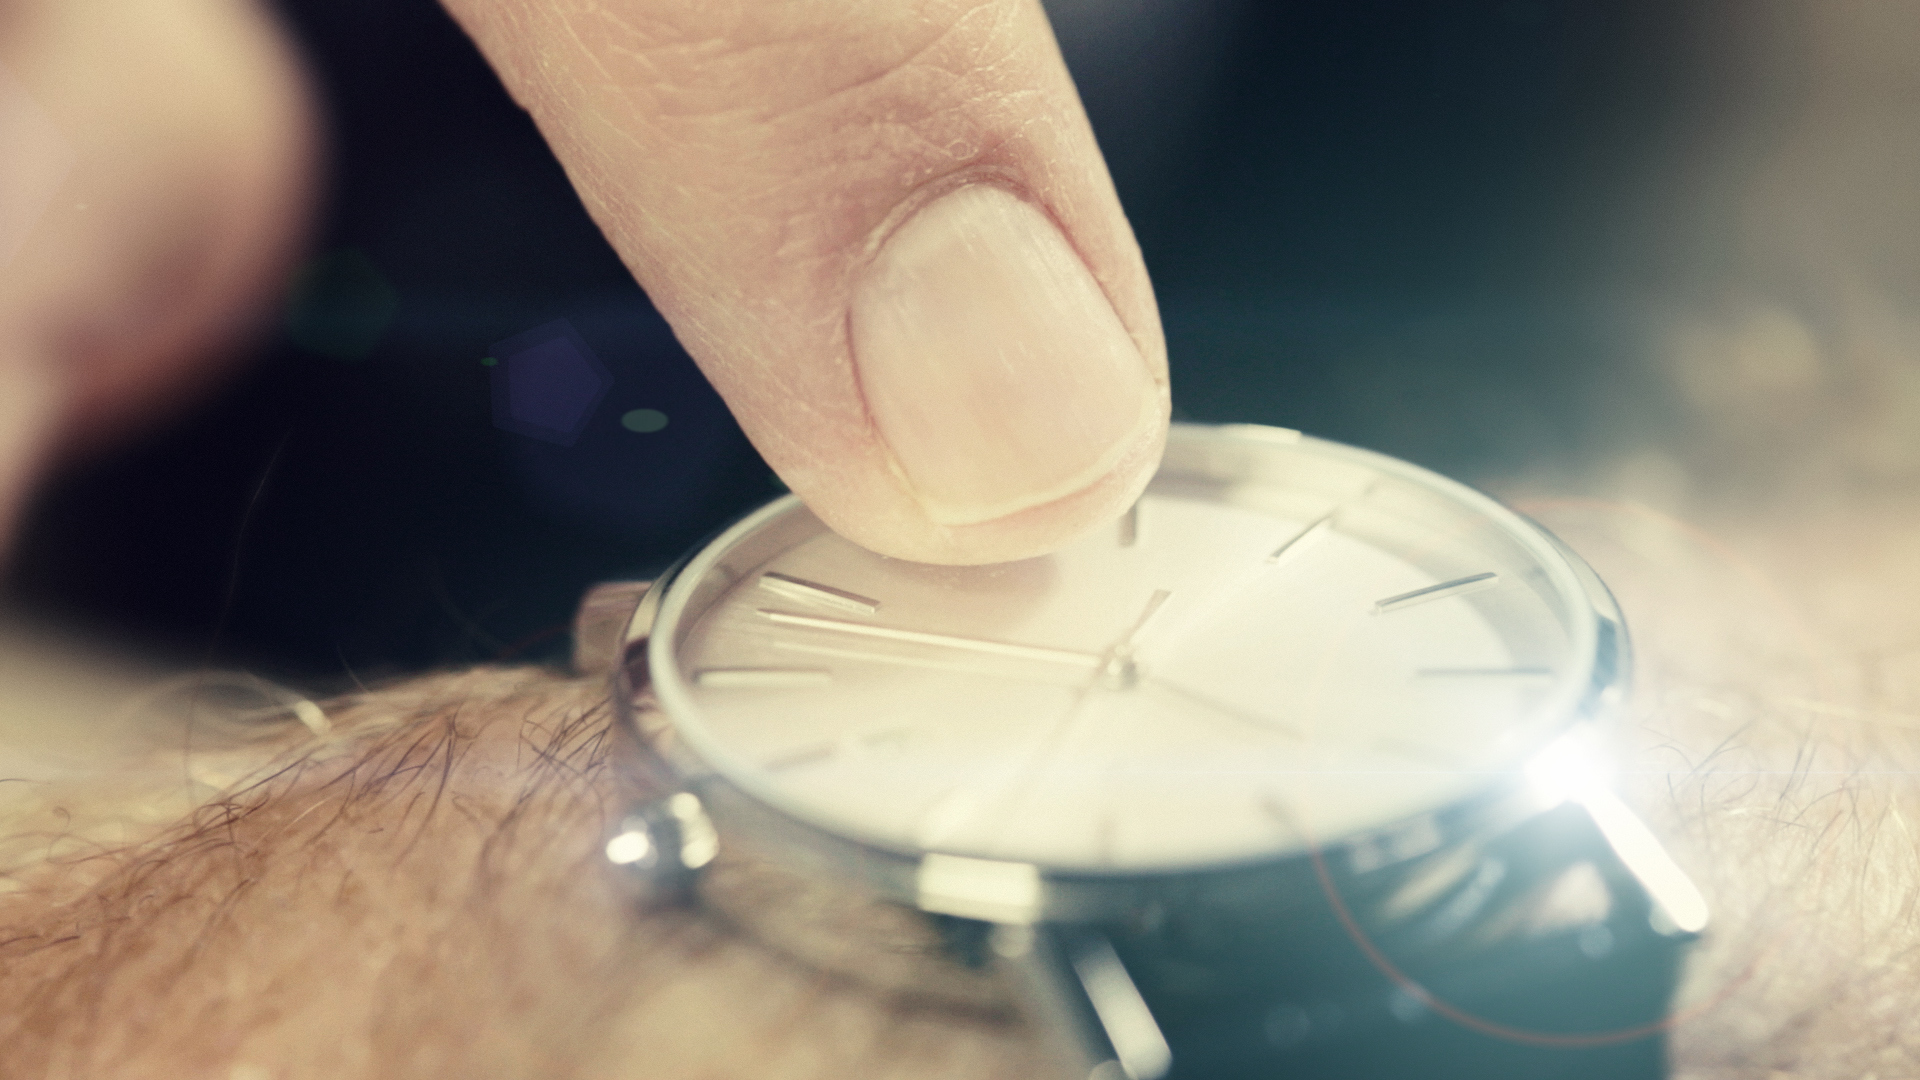 a fingertip tapping a watch face